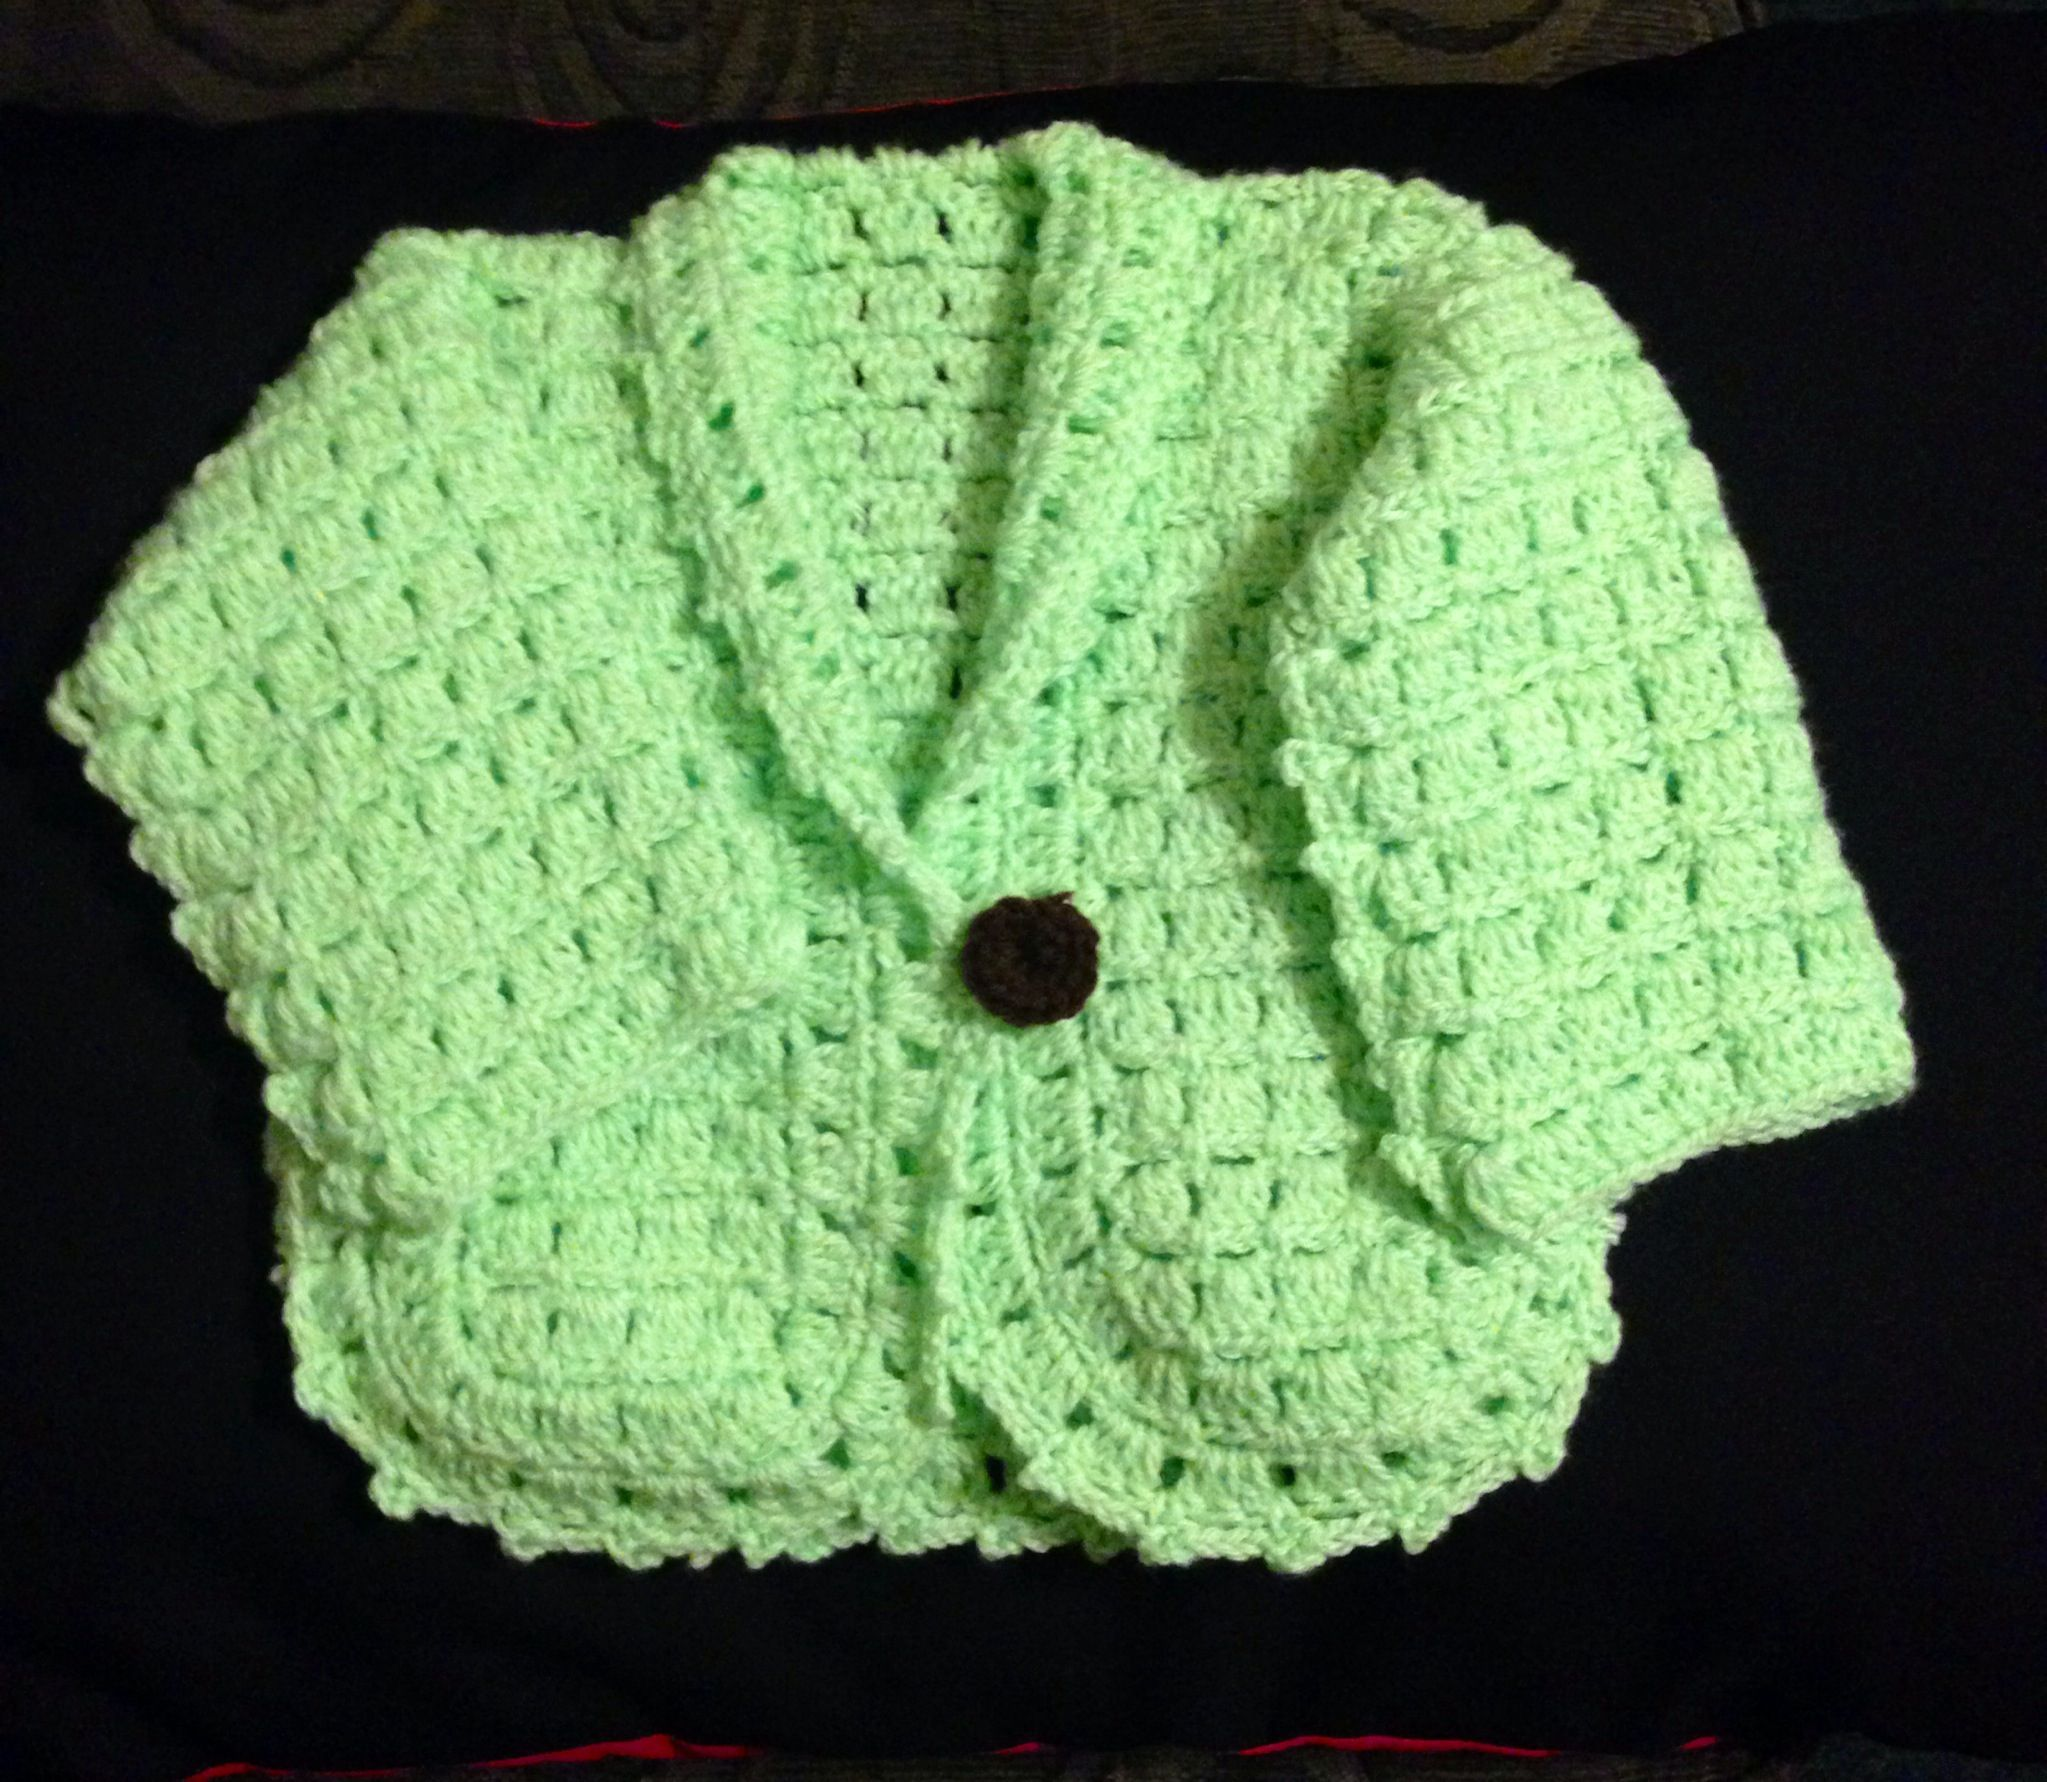 Crochet Items : Baby Crochet Sweater Crochet Small Items Pinterest